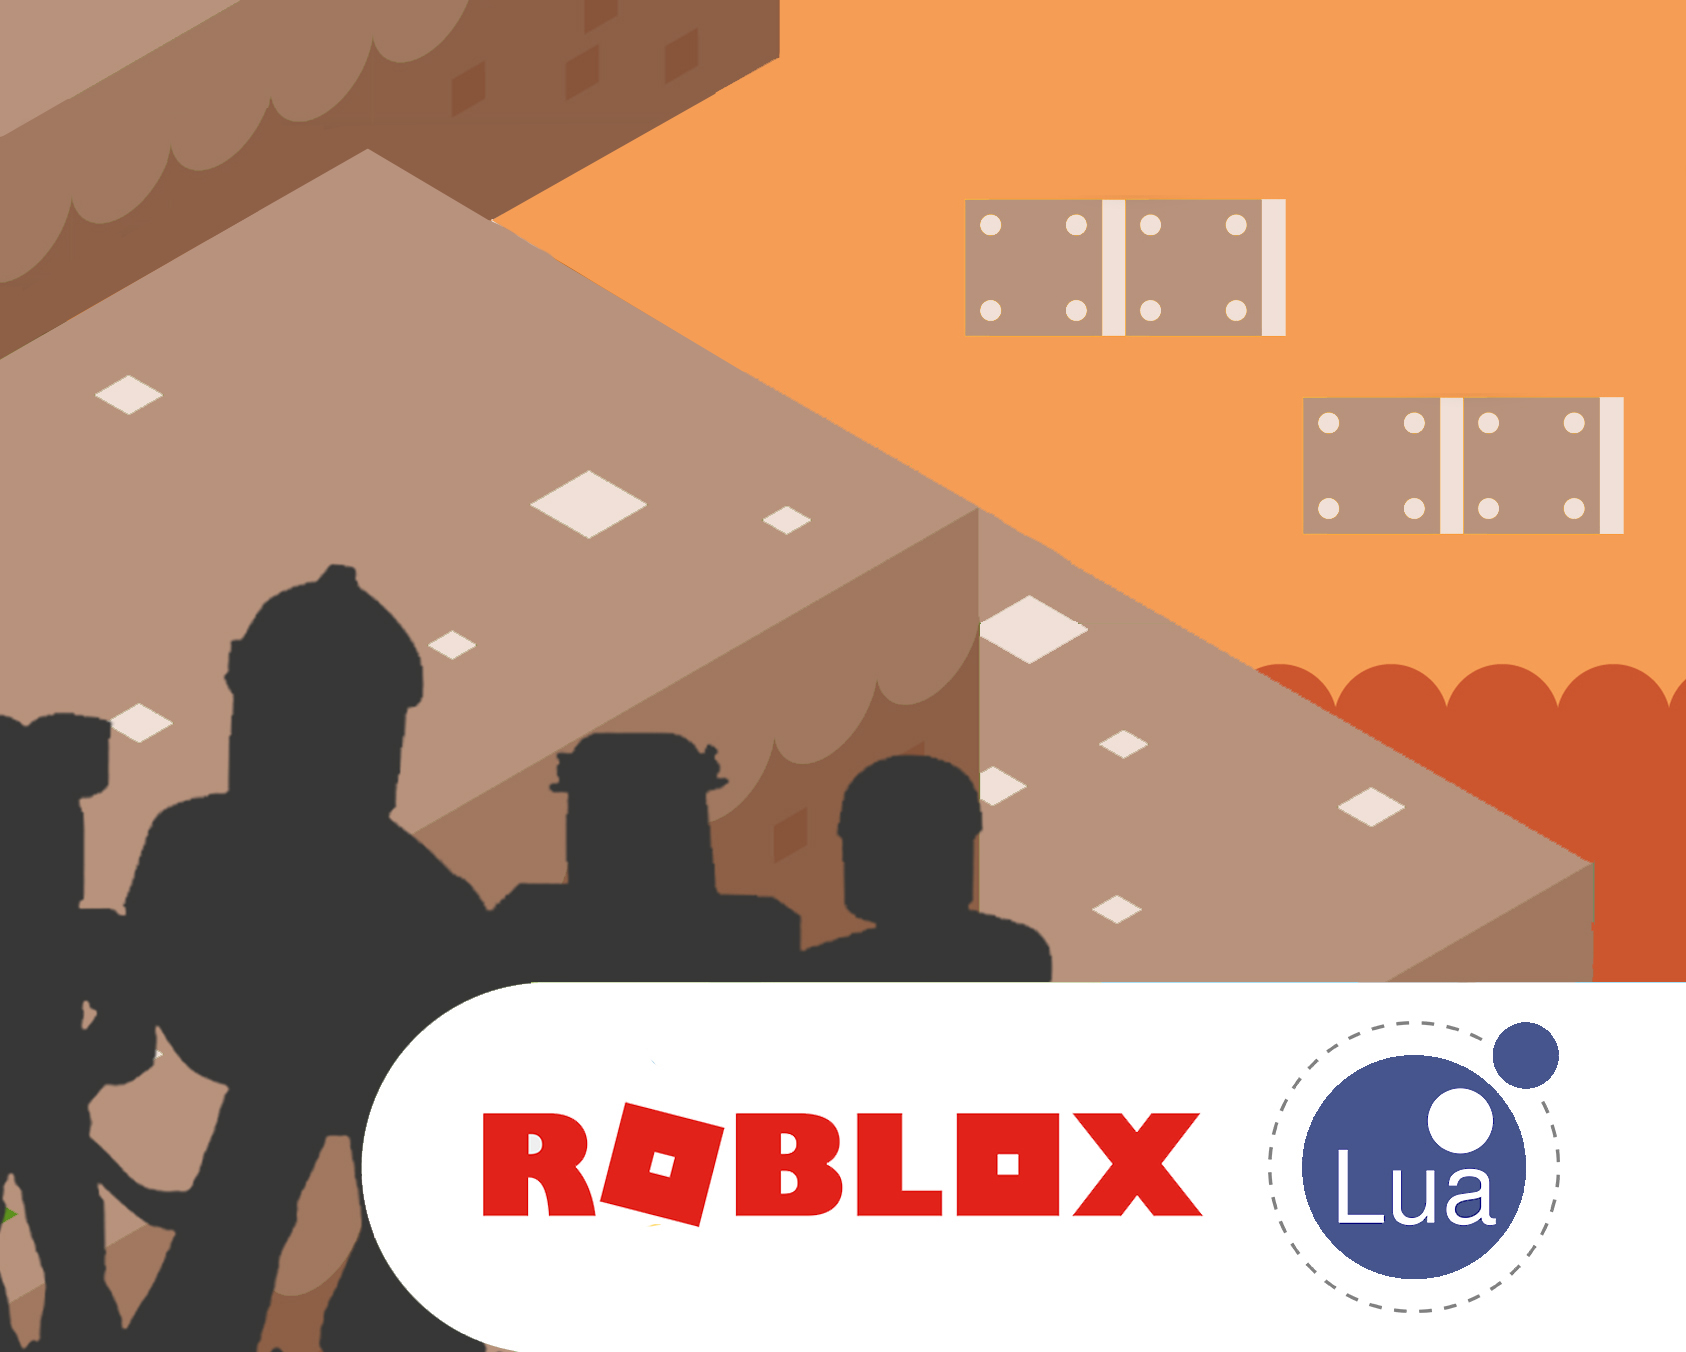 ROBLOX with LUA